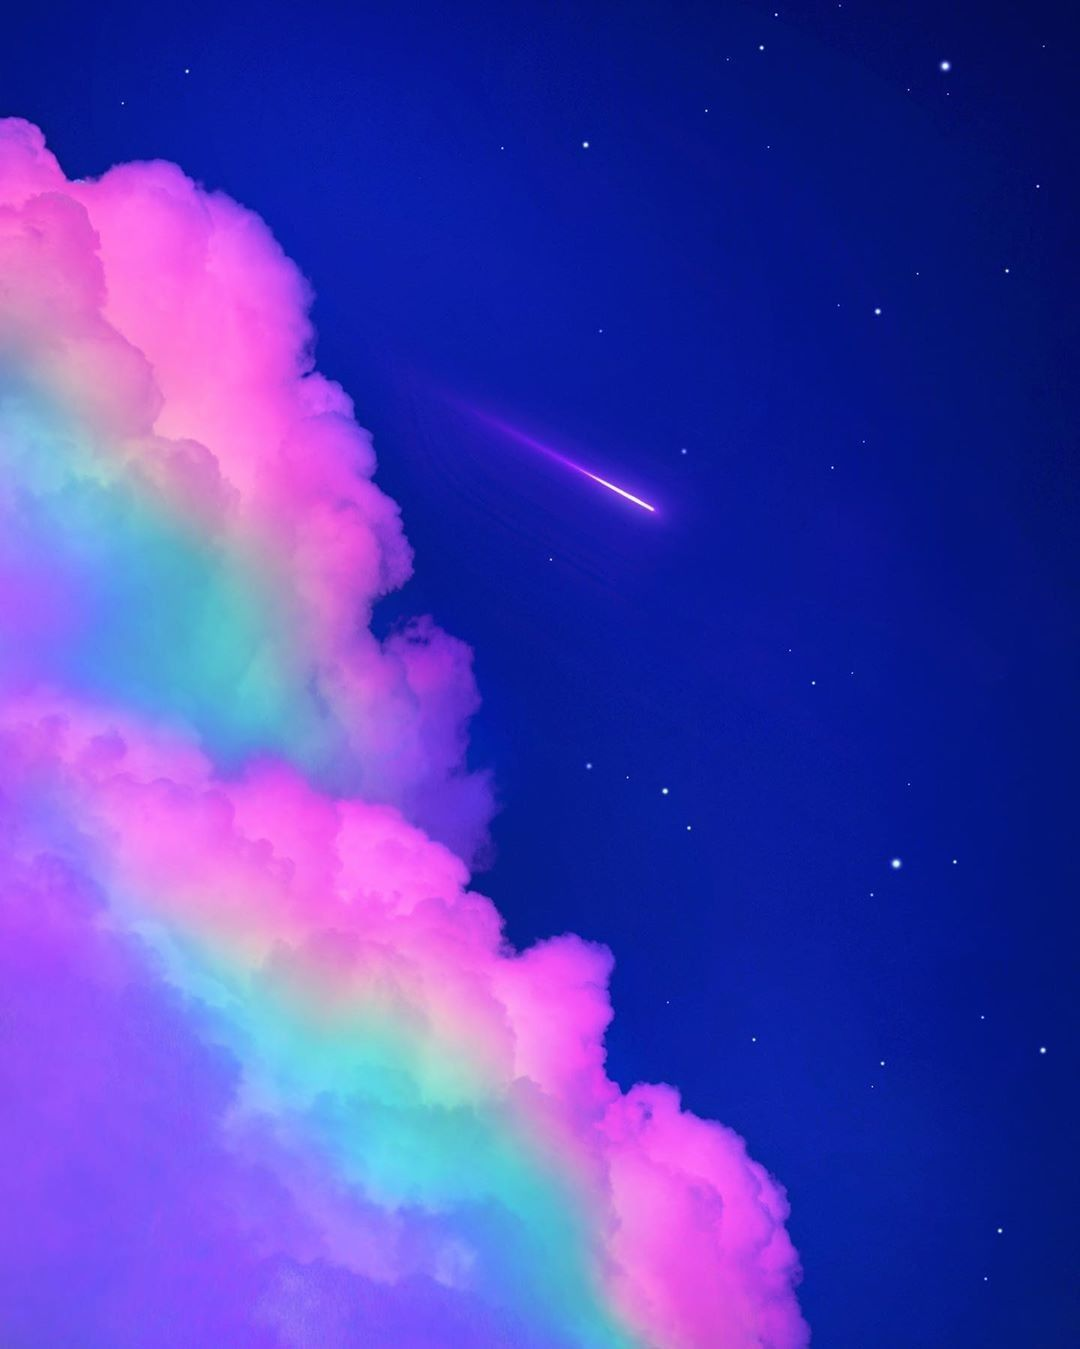 Pin By Jessica Laws Applegate On Cosmos Rainbow Wallpaper Iphone Wallpaper Sky Aesthetic Iphone Wallpaper